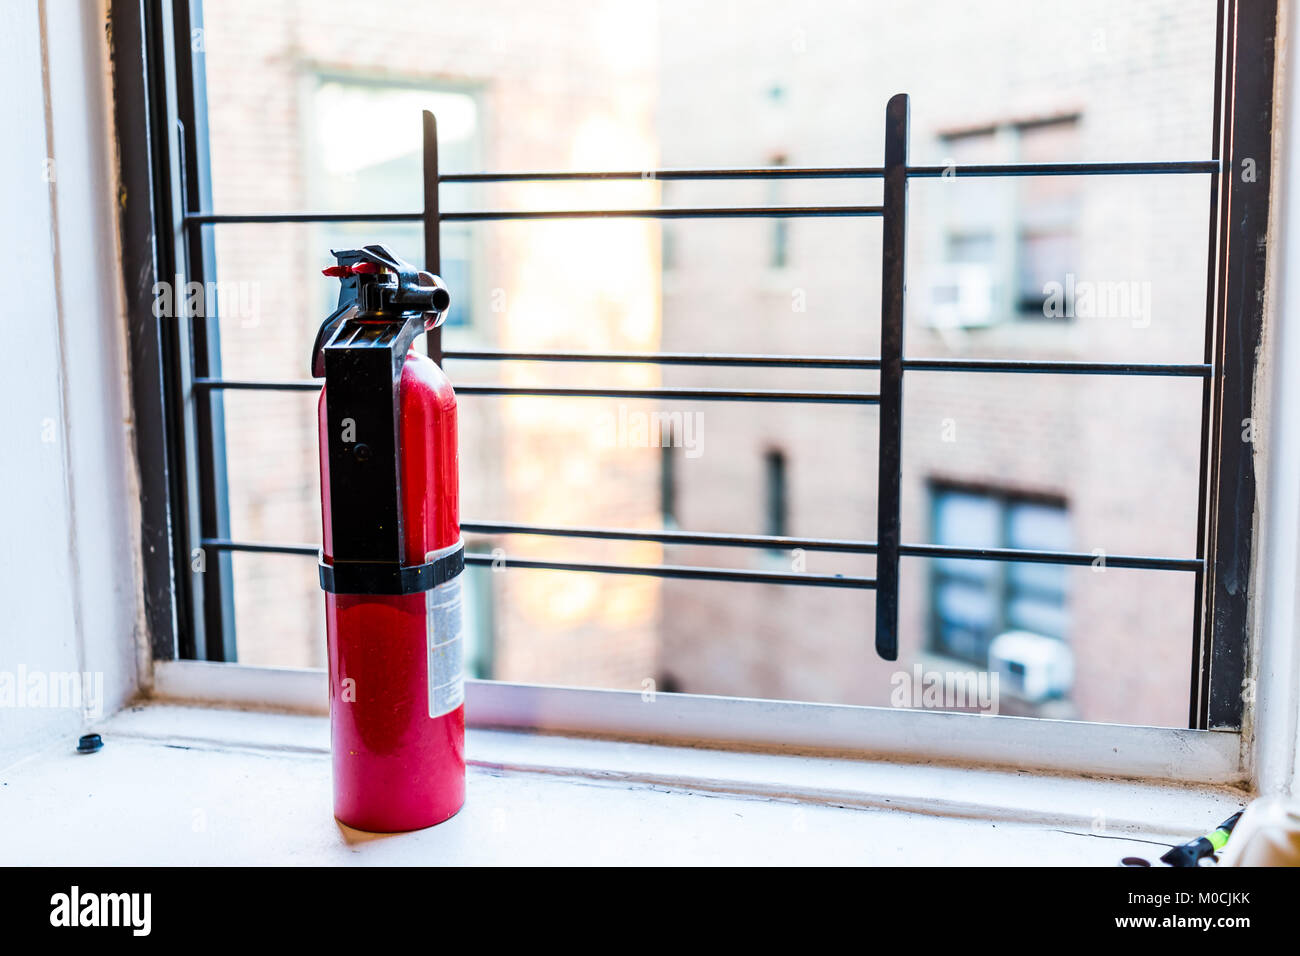 Small apartment red fire extinguisher safety by window in New York City NYC urban Bronx, Brooklyn brick housing, - Stock Image